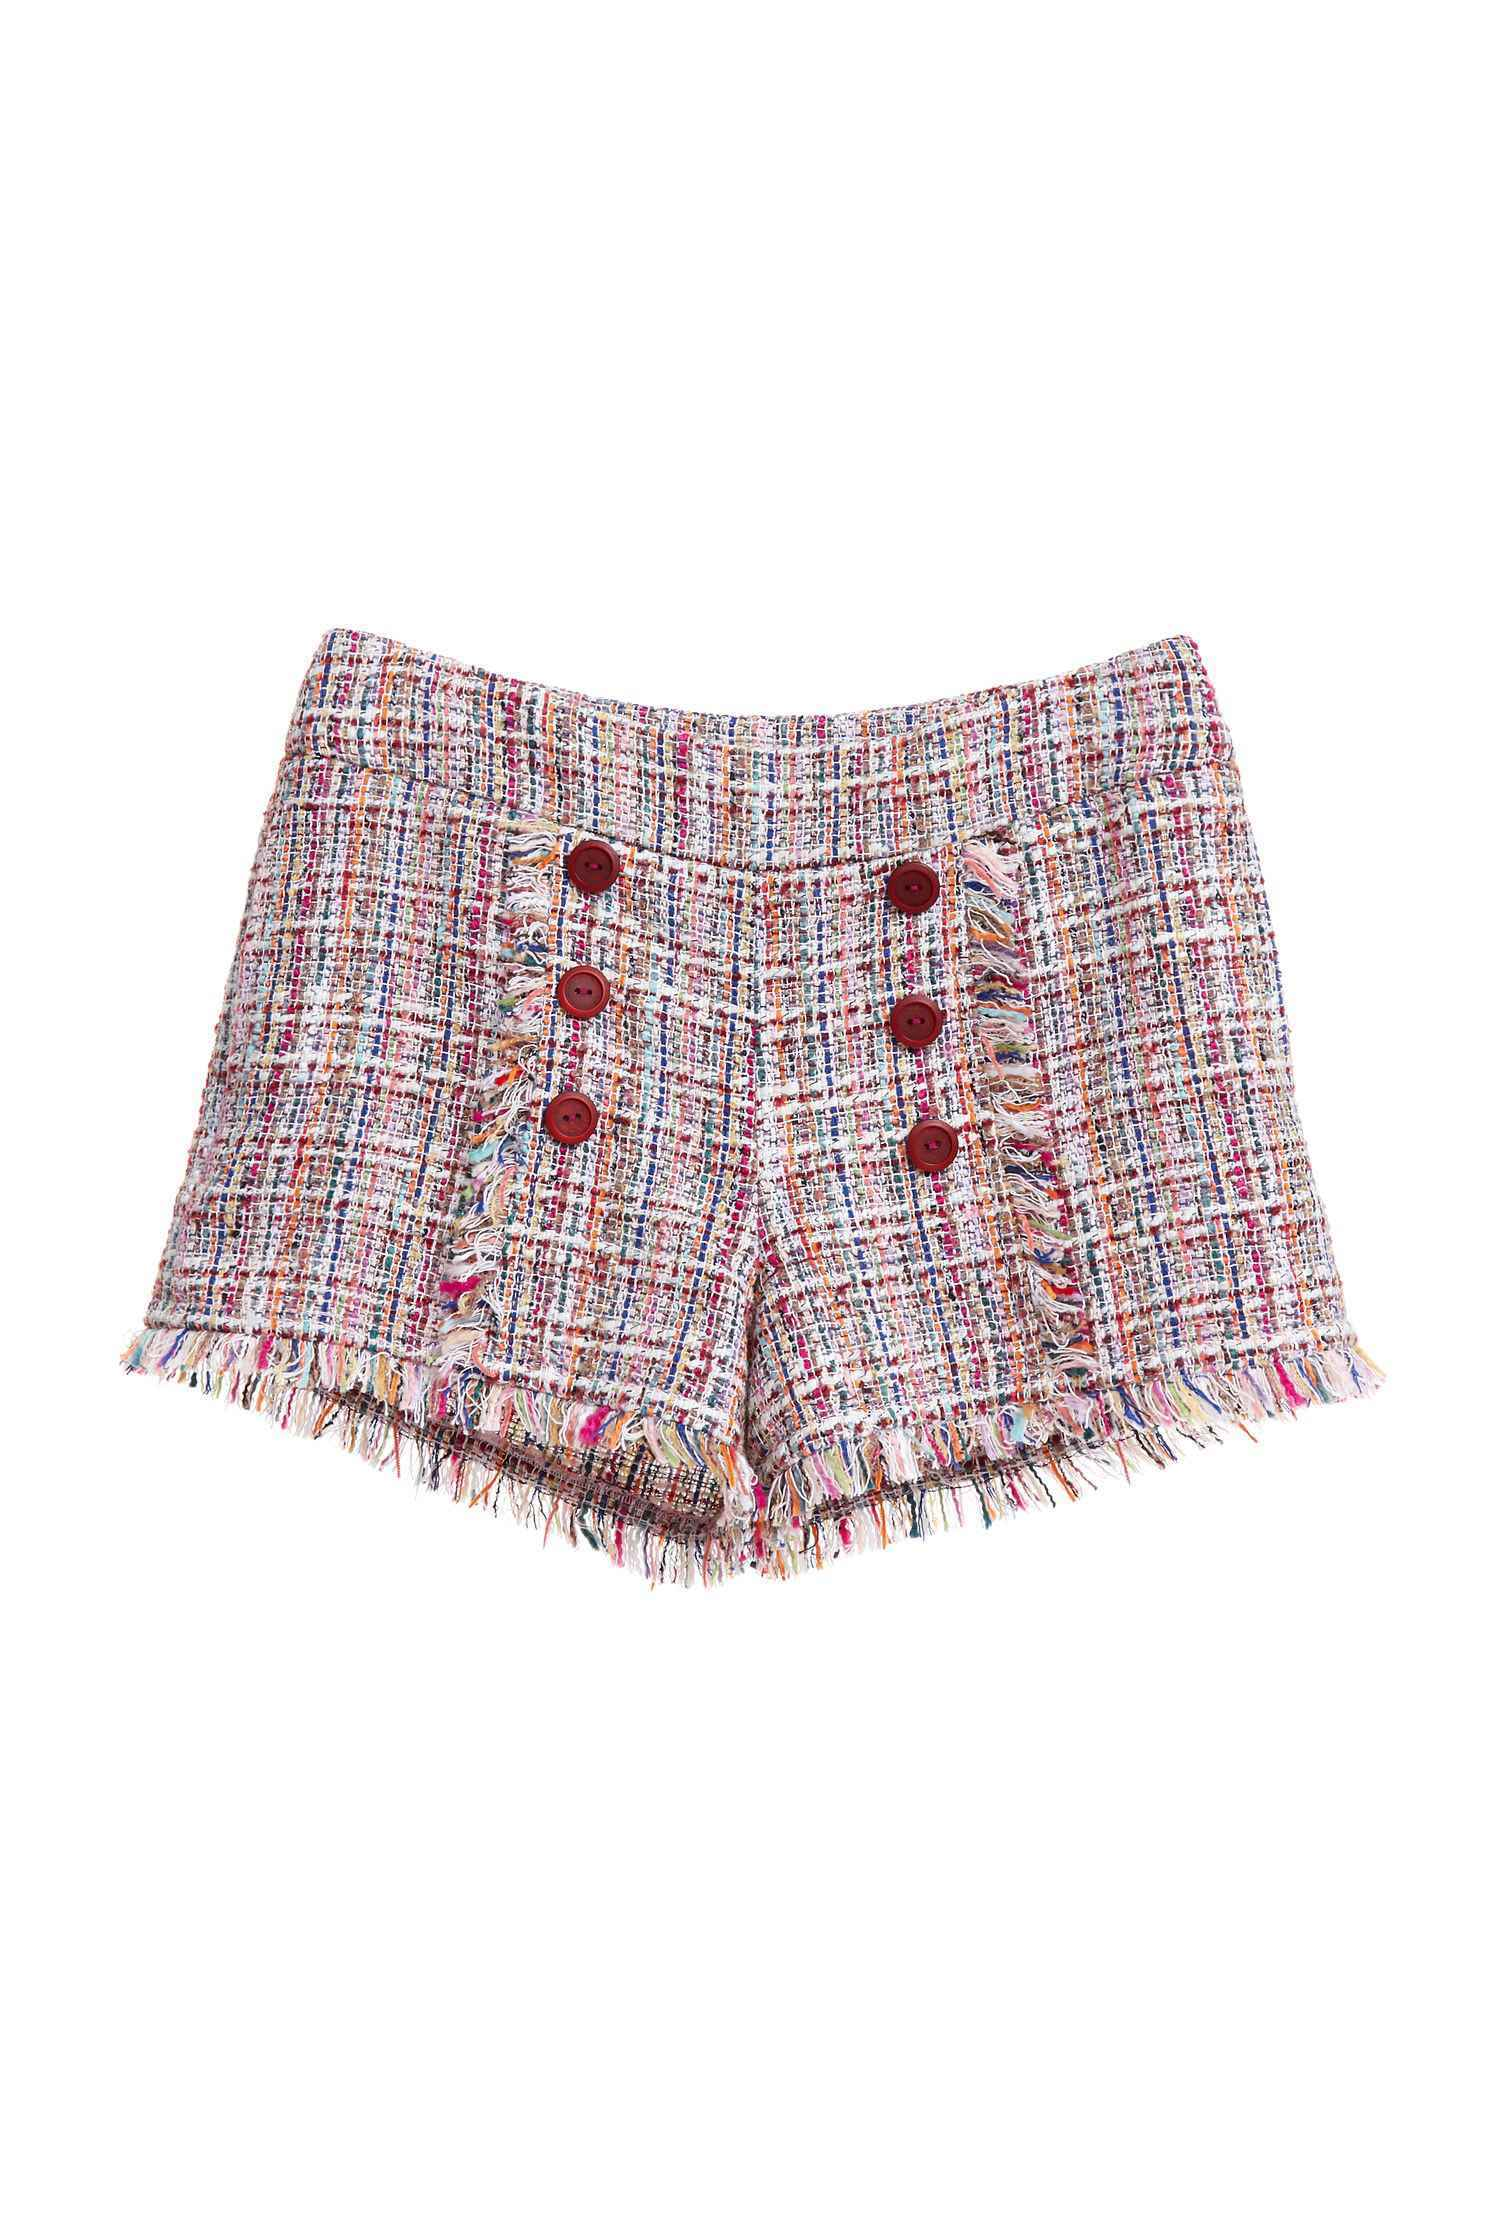 Heather wool shorts